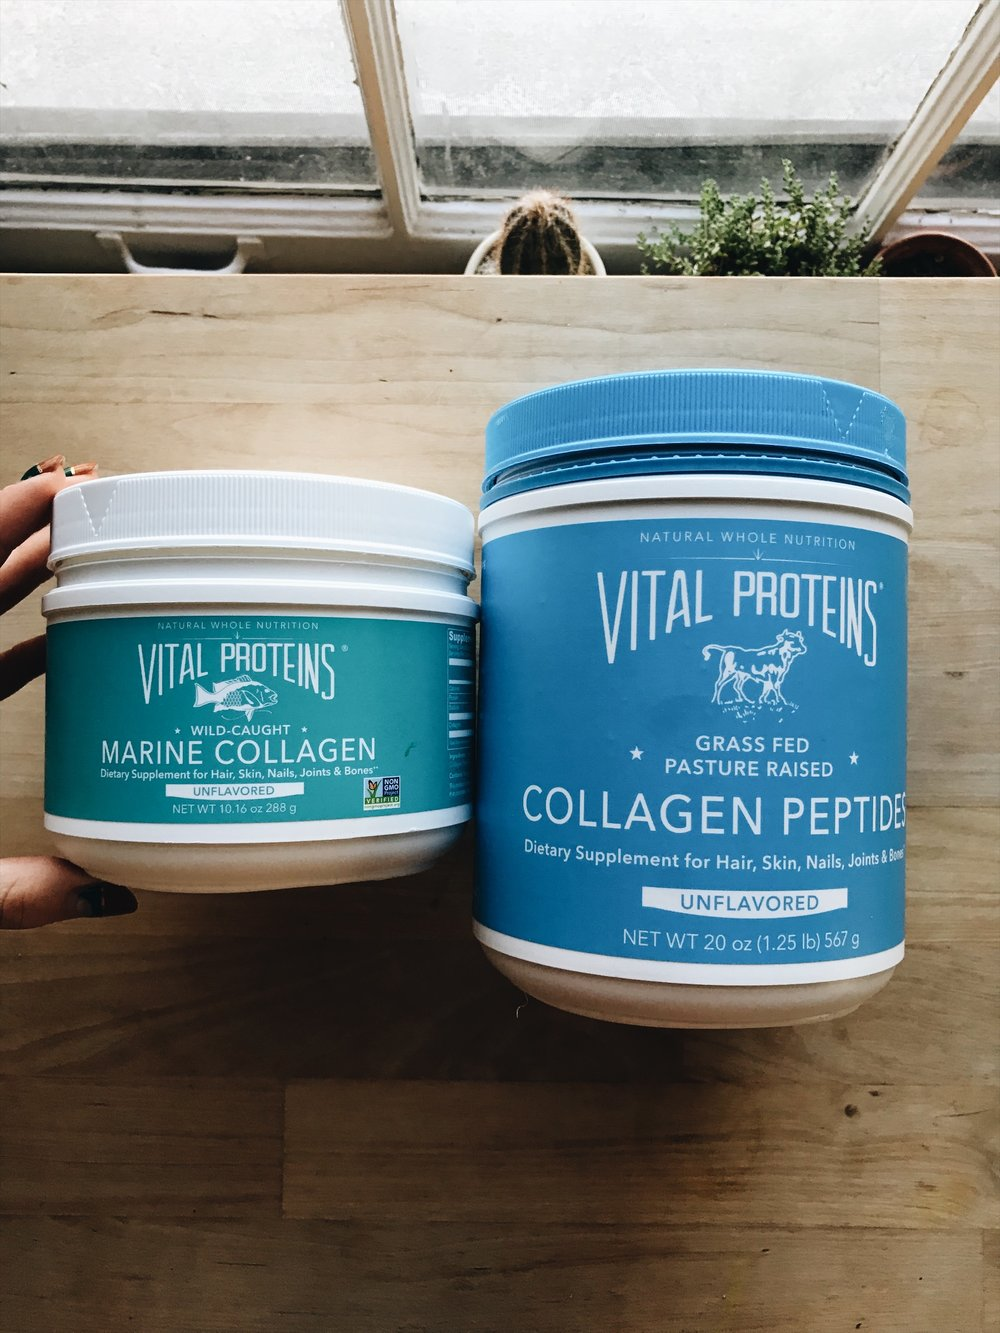 Vital Proteins offers both marine collagen and collagen peptides. Both are unflavored.